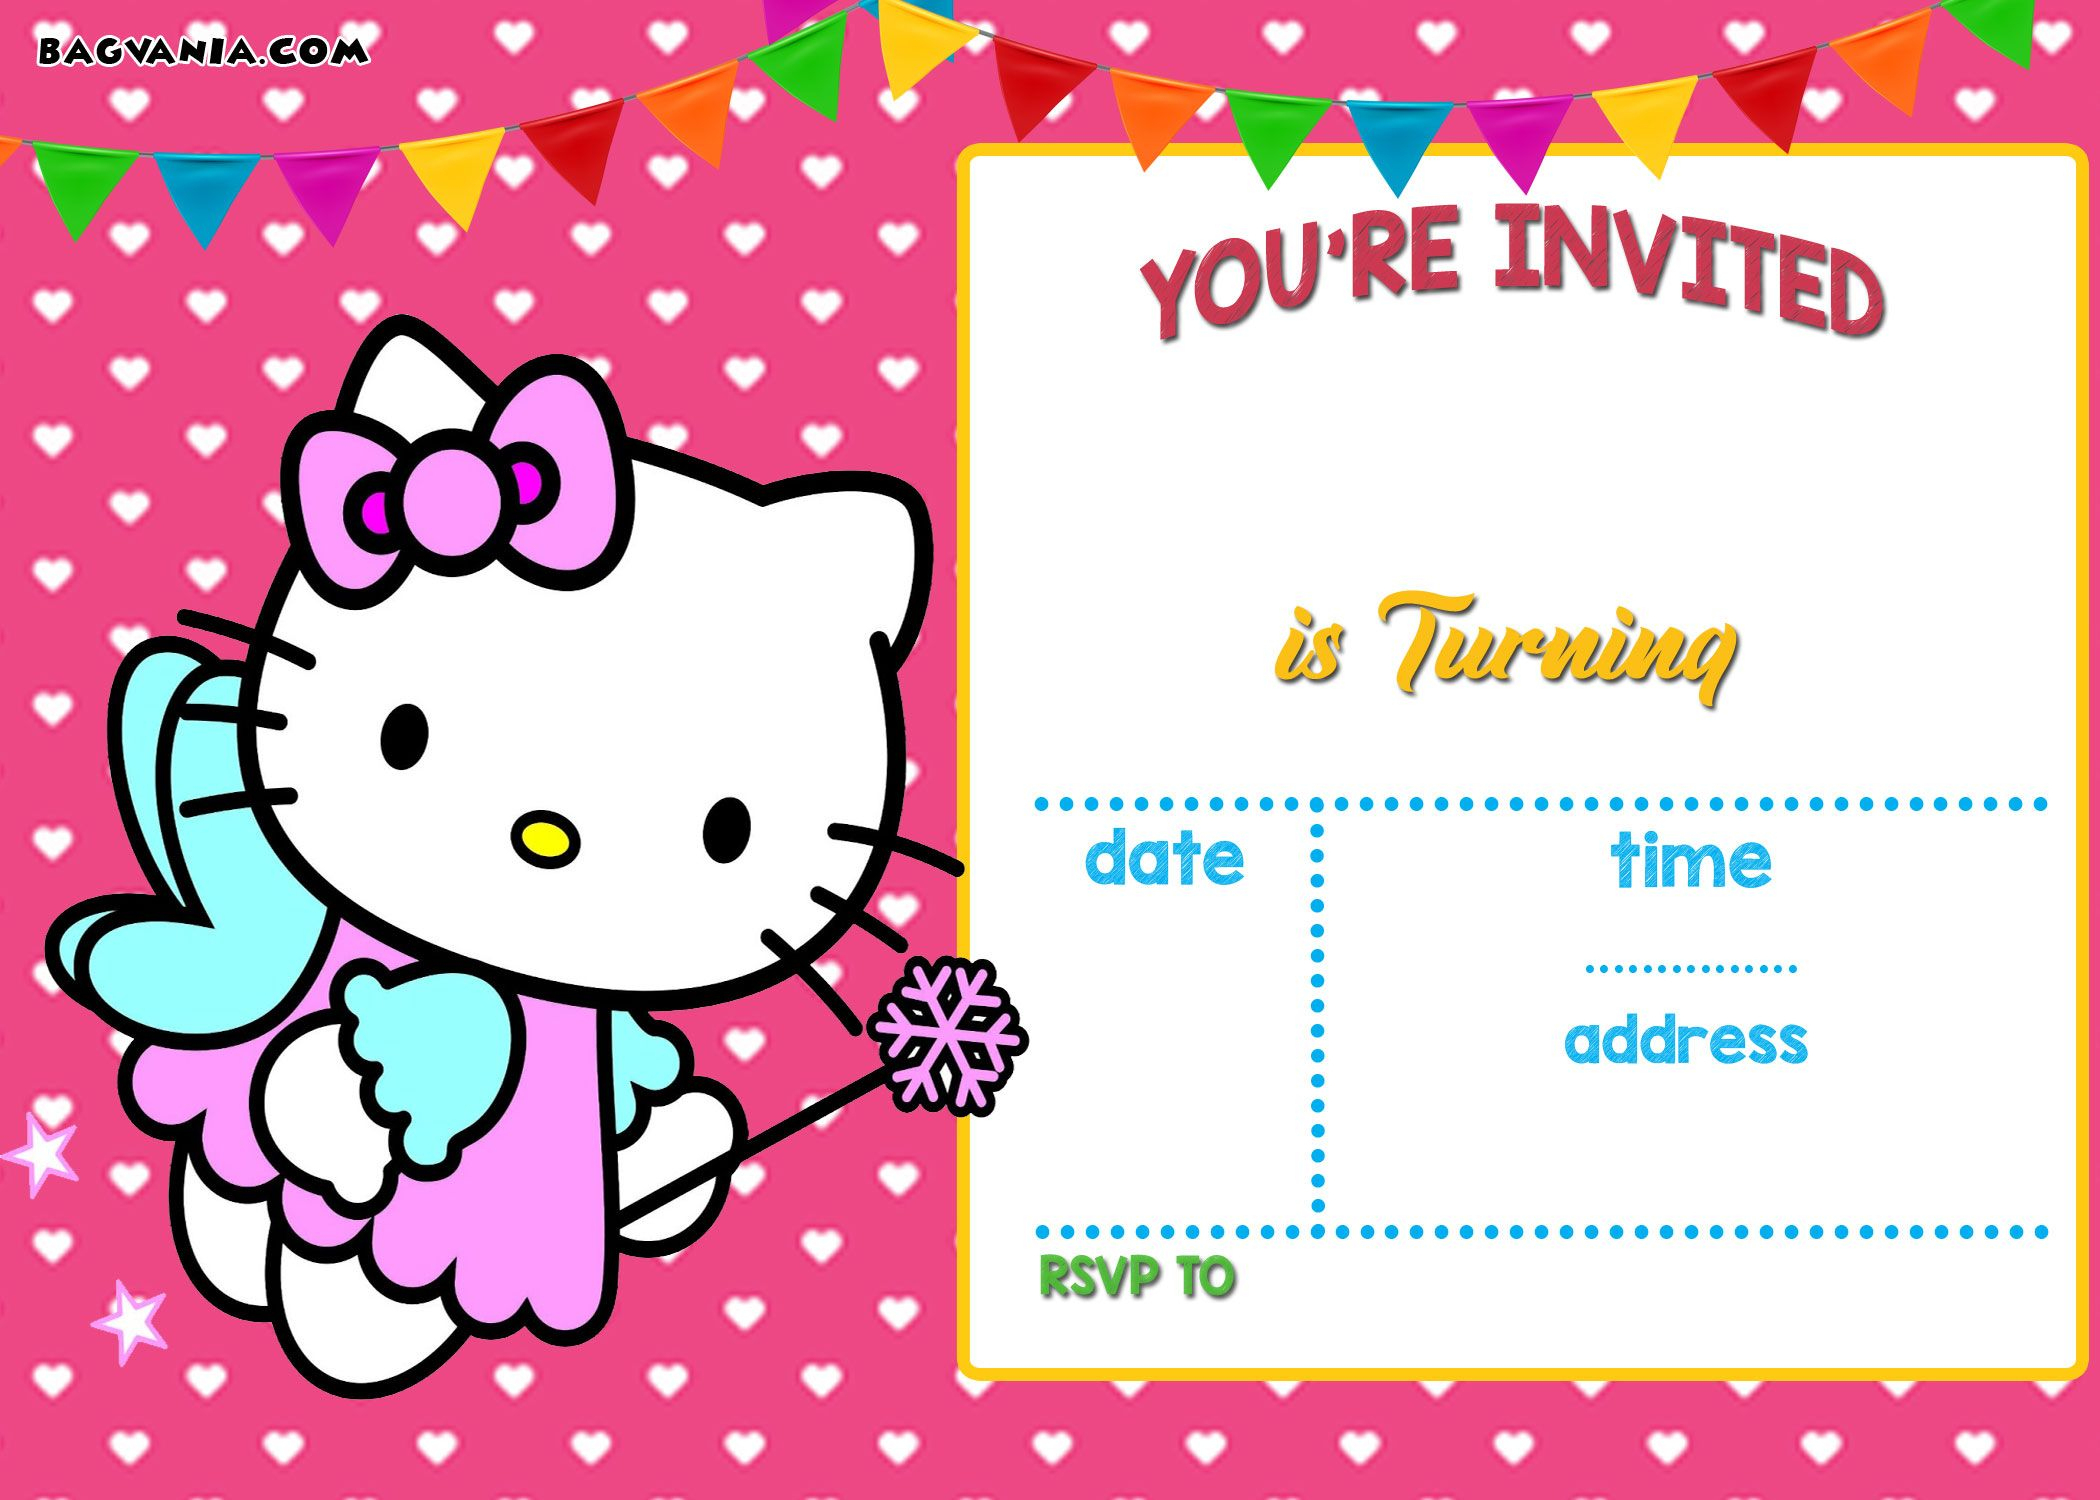 Free Hello Kitty Invitation | Free Printable Birthday Invitation - Hello Kitty Free Printable Invitations For Birthday